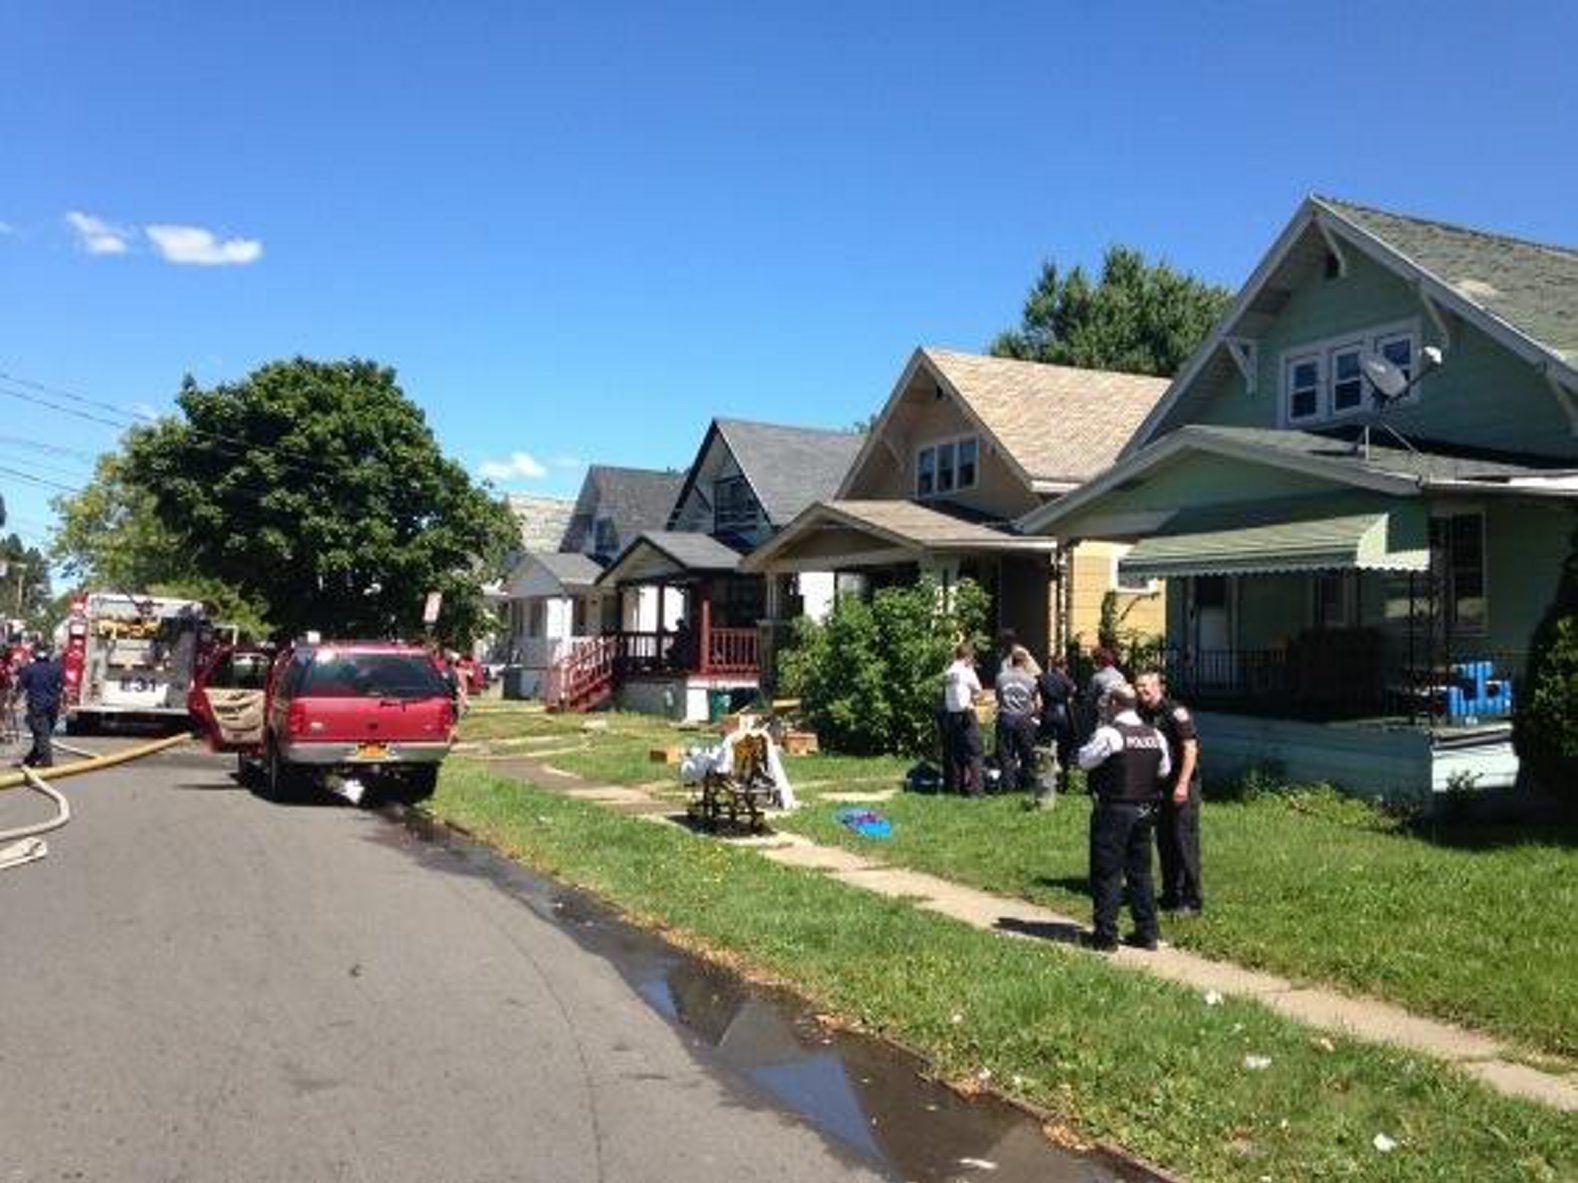 Emergency personnel at the scene of today's fire on Sprenger Avenue. (John Hickey/Buffalo News)